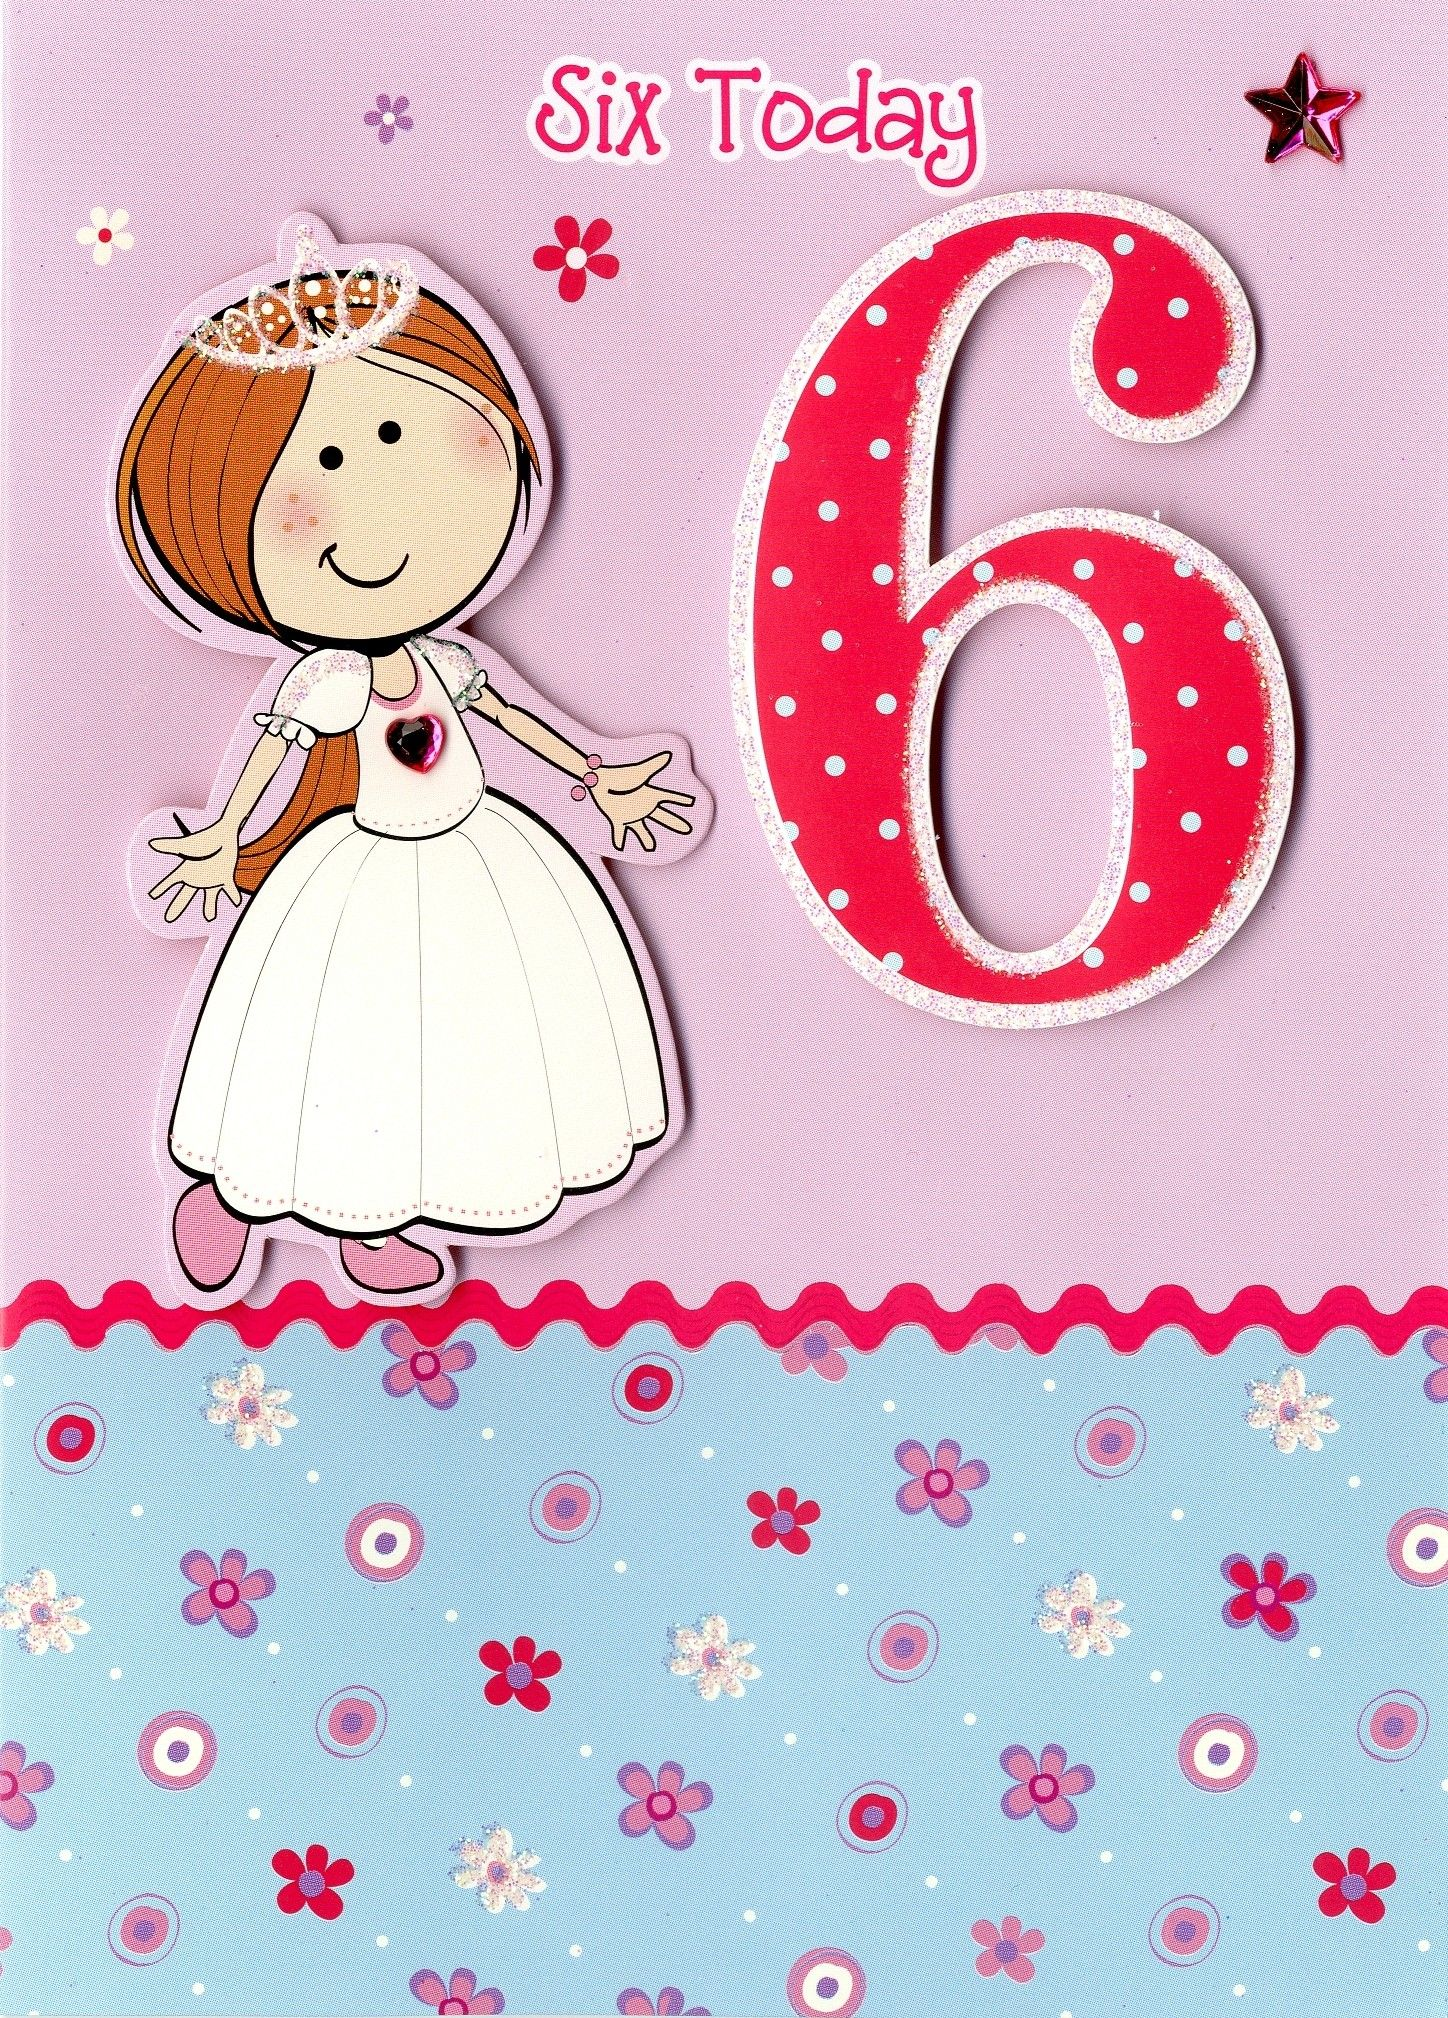 Girl age 6 birthday card princess sorry out of stock party girl age 6 birthday card princess sorry out of stock bookmarktalkfo Images